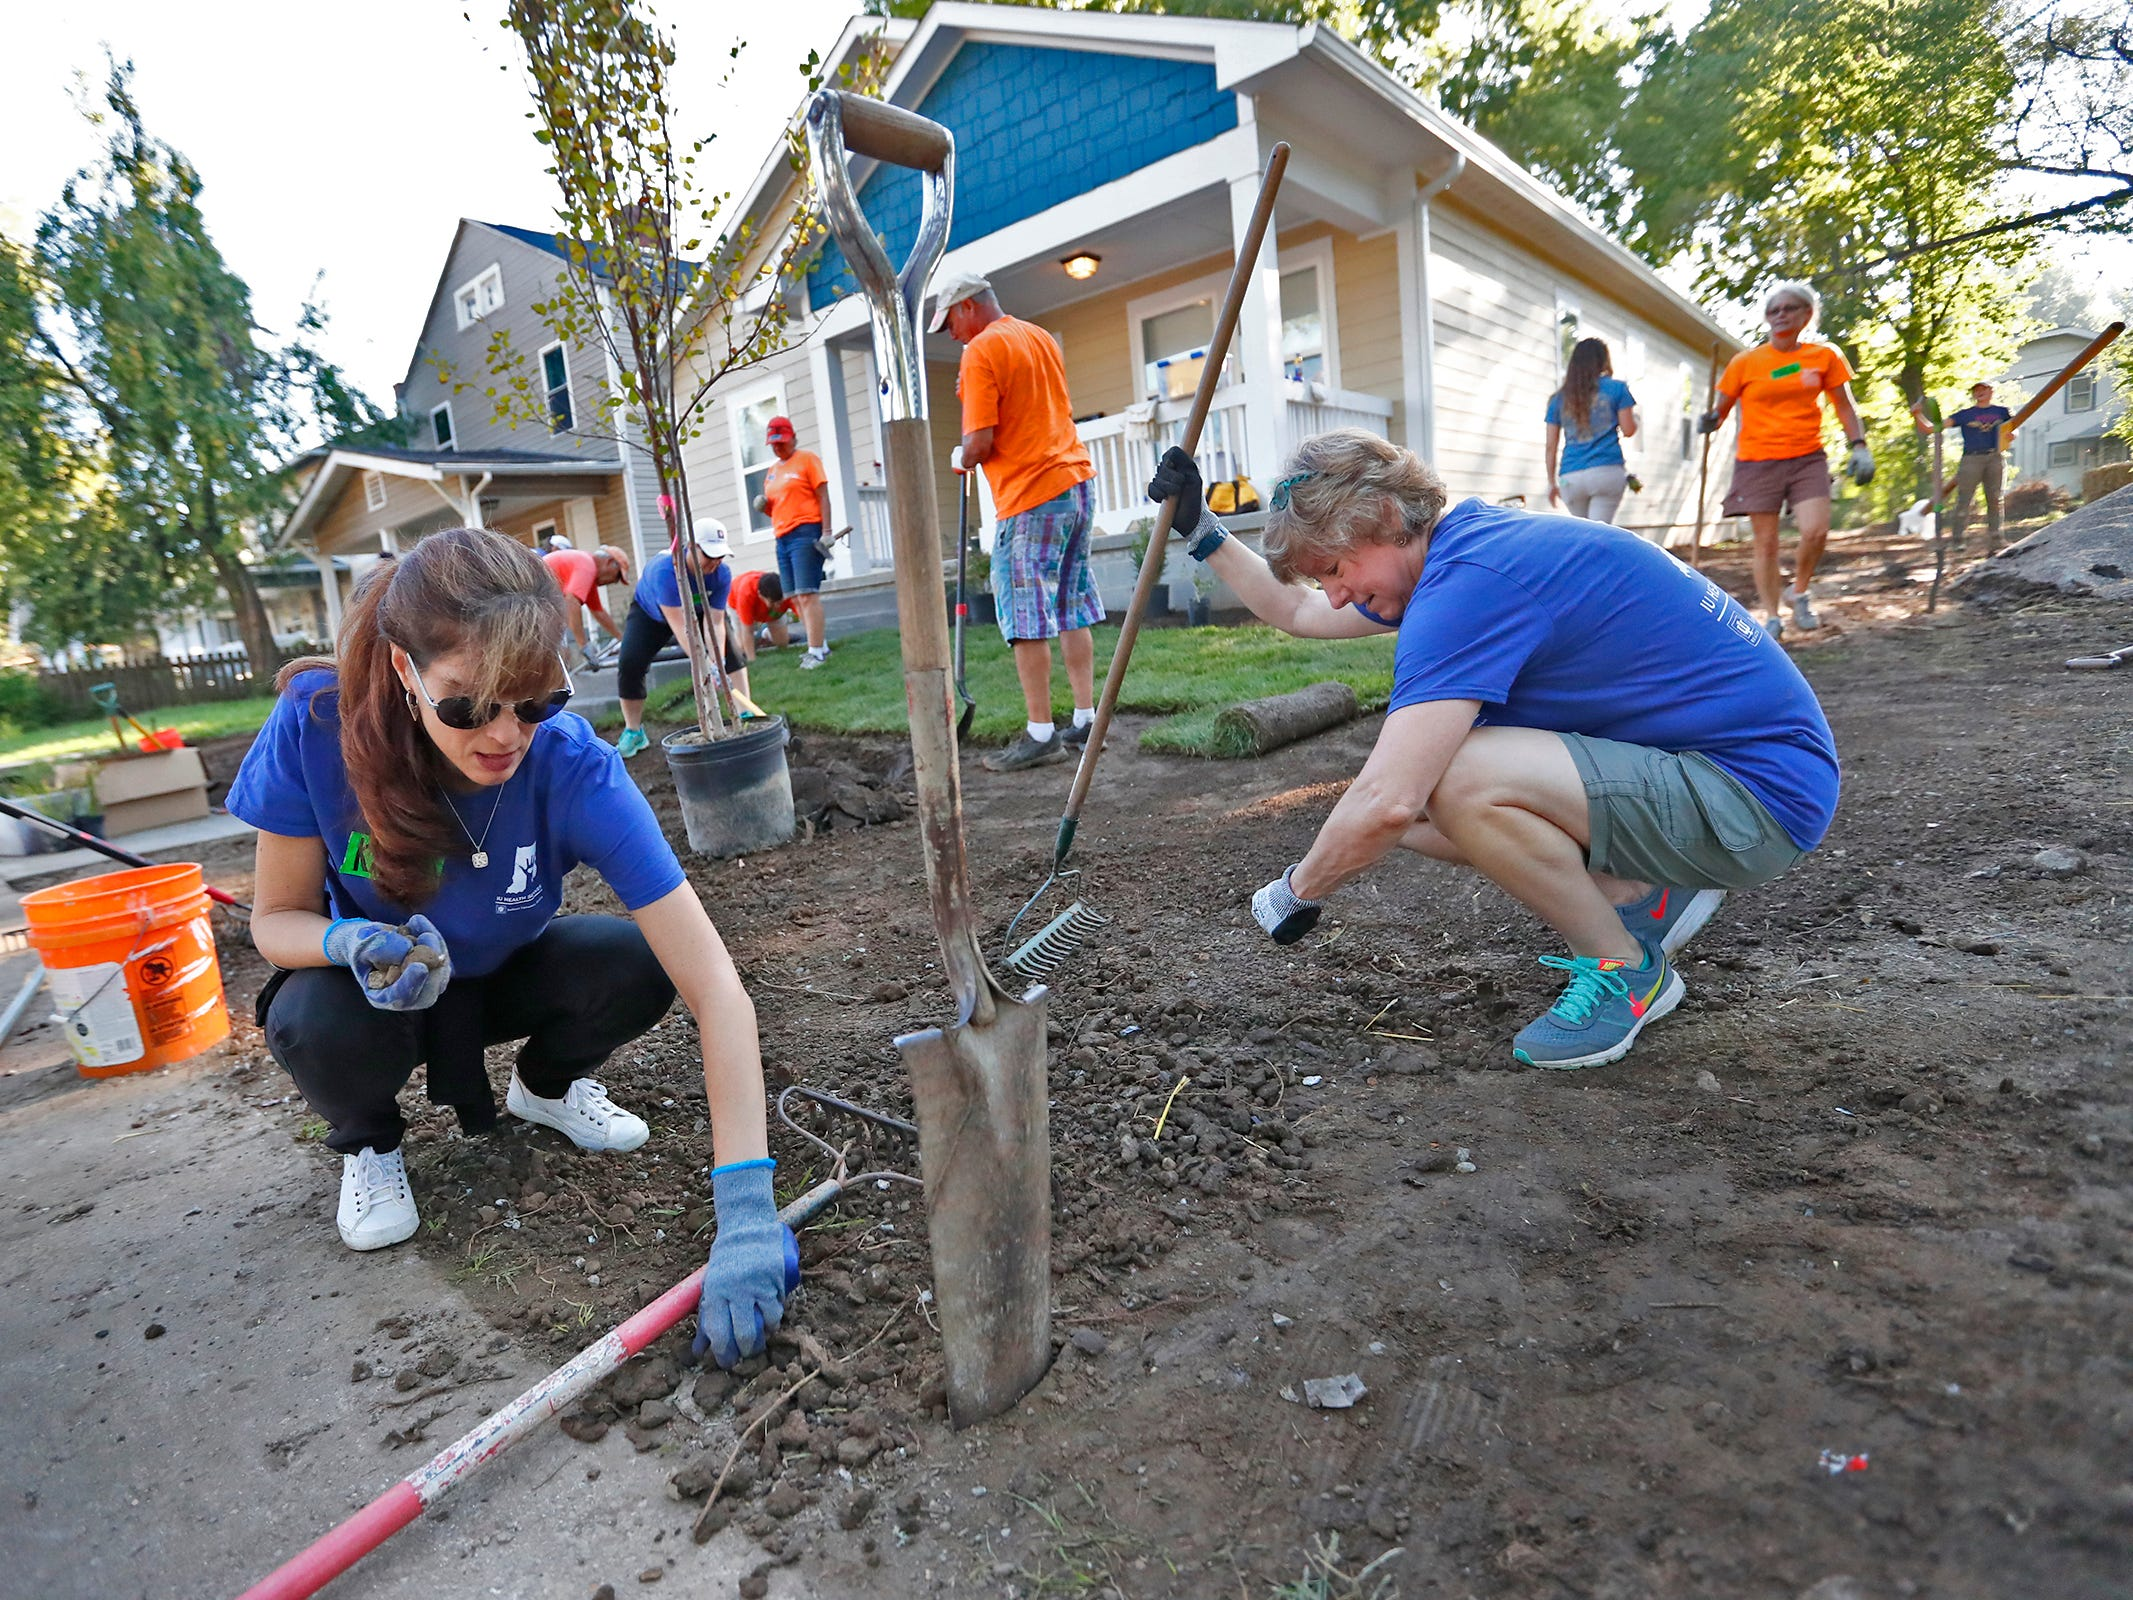 Katie Du Fresne, left, Sharon Whitaker, right, and other volunteers work on front lawn landscaping during the 10th Annual IU Health Day of Service, Friday, Sept. 13, 2018.  IU Health team members donated time and effort building and finishing a Habitat for Humanity home in the 3700 block of Kenwood Ave. For 22 days, with partner volunteers, over 250 members of the IU Health team have donated more than 1680 hours at the house that will become the new home for the Ndatira family.